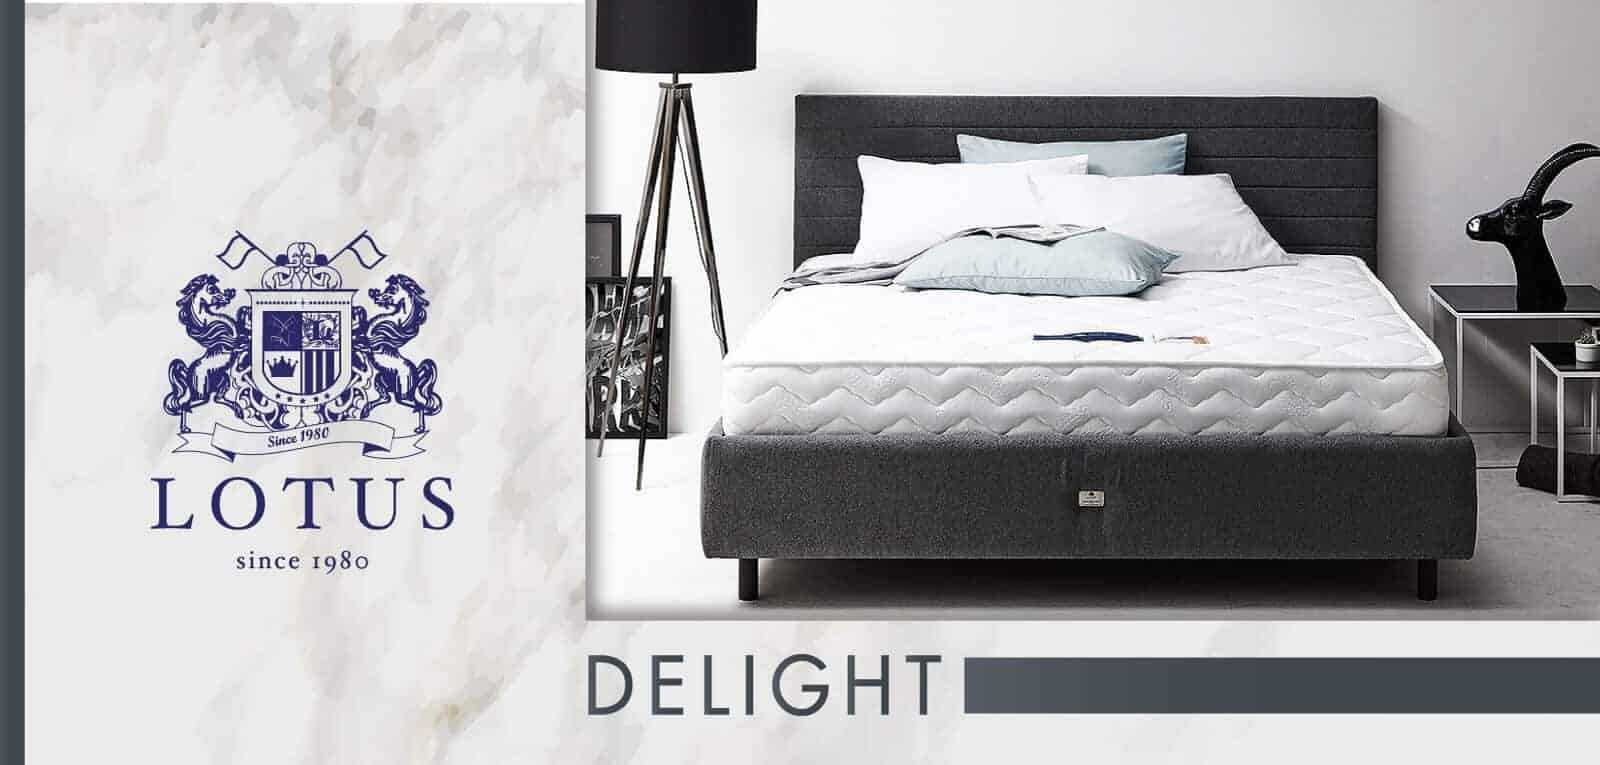 Lotus Foam Spring Mattress Delight – Ideal Firm Mattress – Thickness 10 inches – Warranty 10 years 7